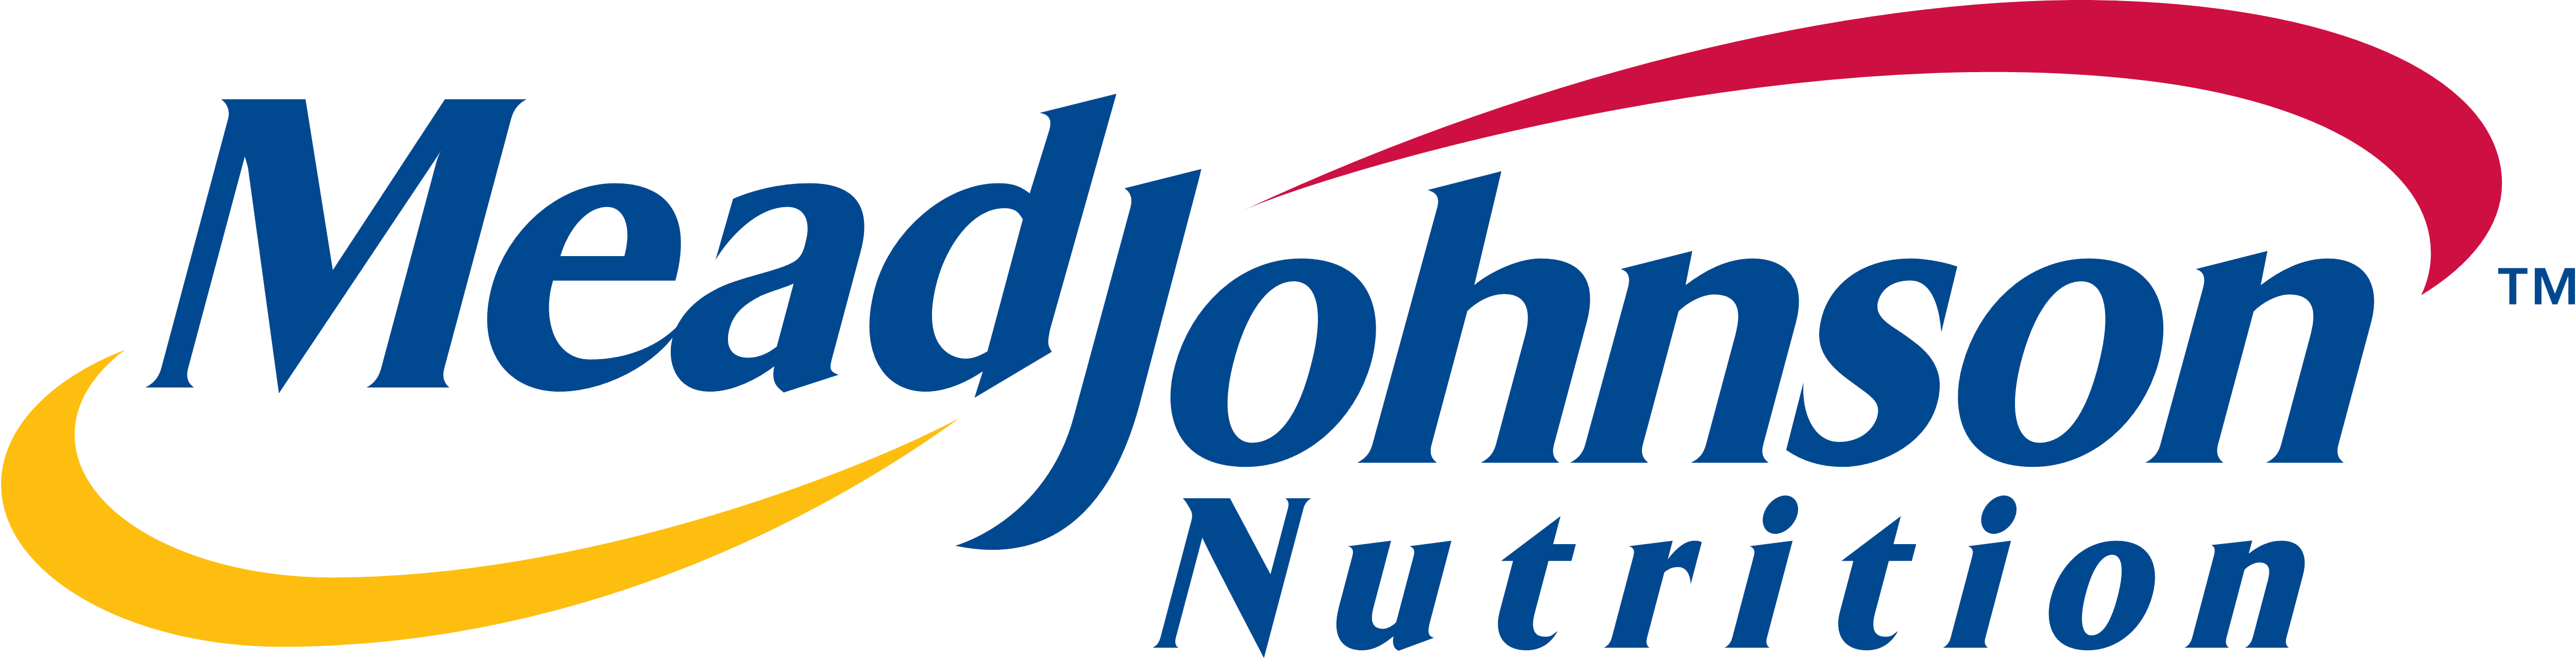 7646 Mead Johnson Nutrition Logo Download on ray ban graphics